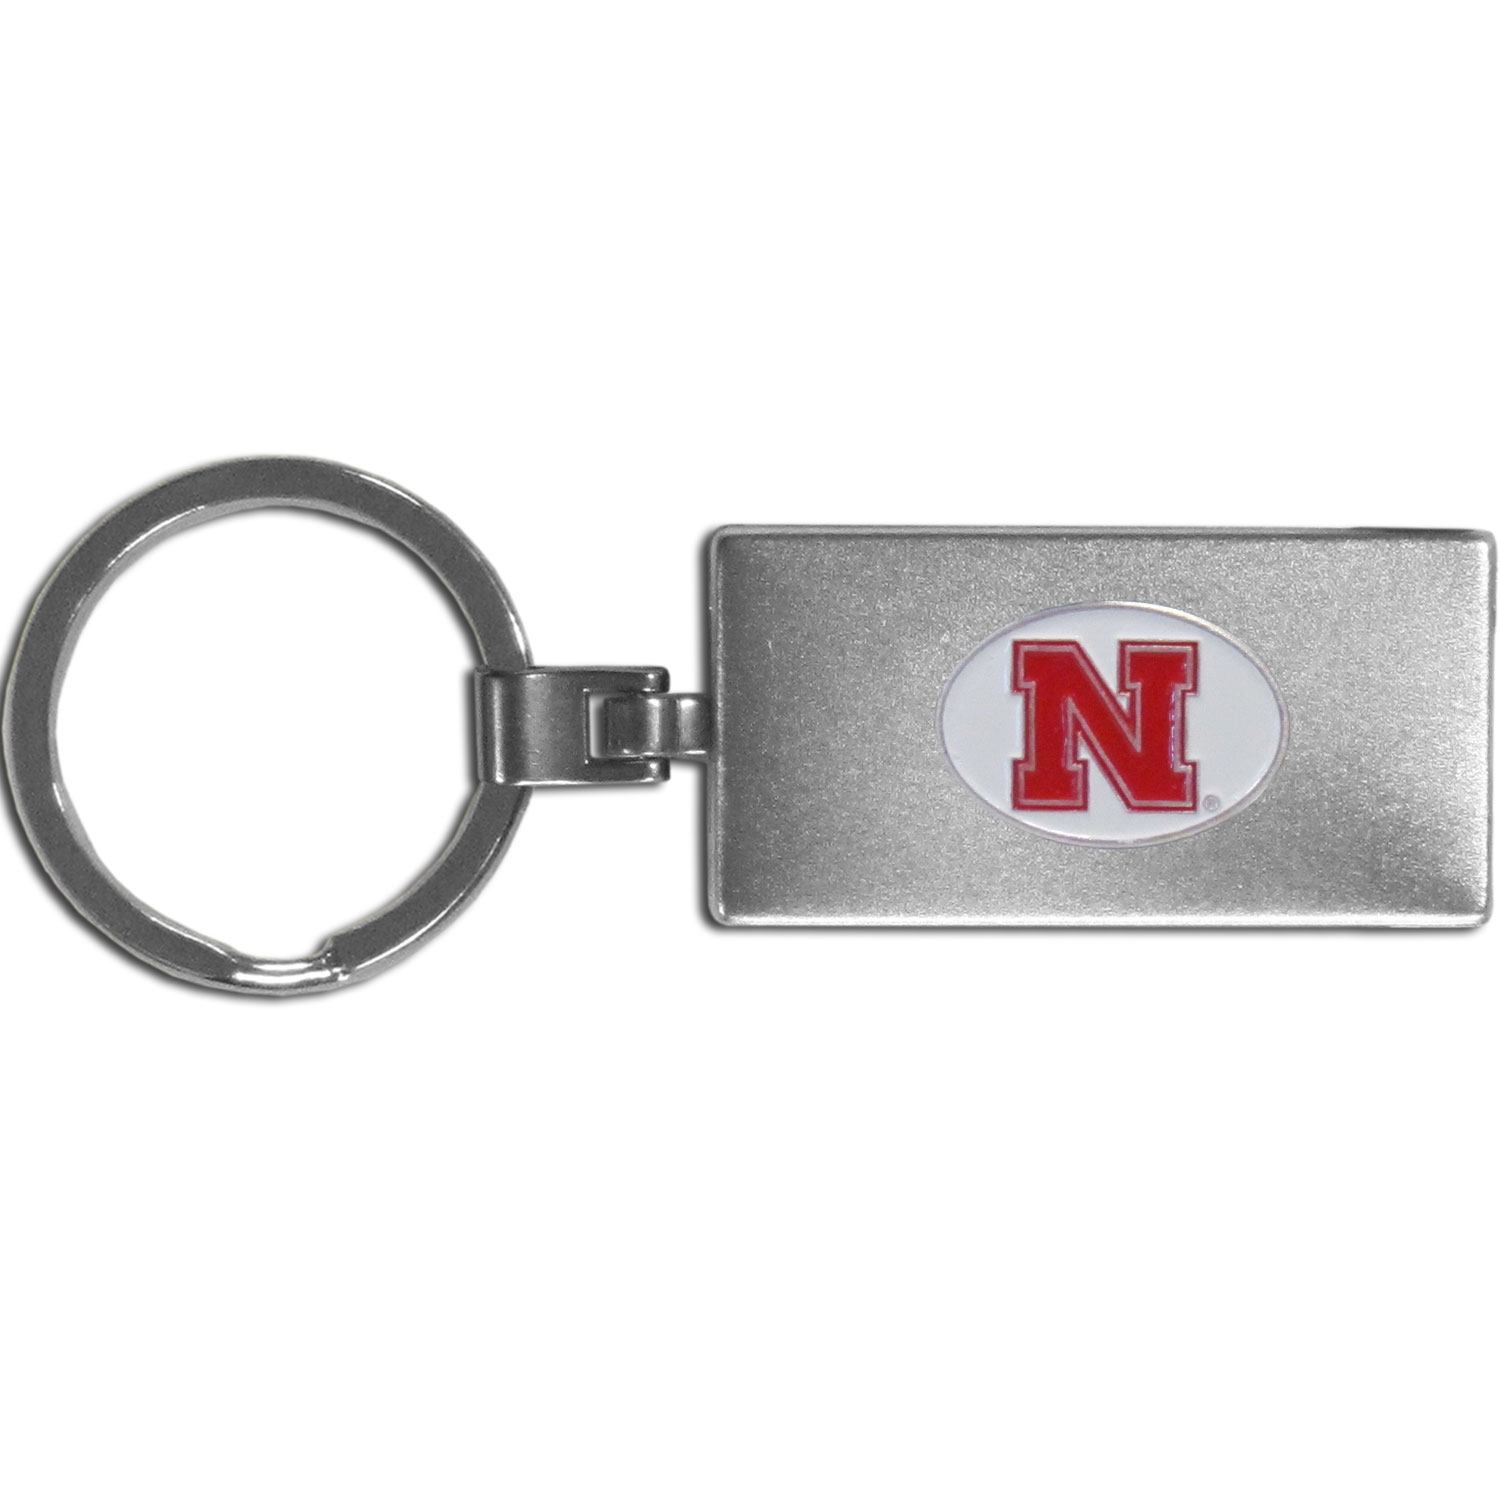 Nebraska Cornhuskers Multi-tool Key Chain - Be the hero at the tailgate, camping, or on a Friday night with your Nebraska Cornhuskers Multi-Tool Keychain which comes complete with bottle opener, scissors, knife, nail file and screw driver. Be it opening a package or a beverage Siskiyou's Multi-Tool Keychain goes wherever your keys do. The keychain hangs at 4 inches long when closed.